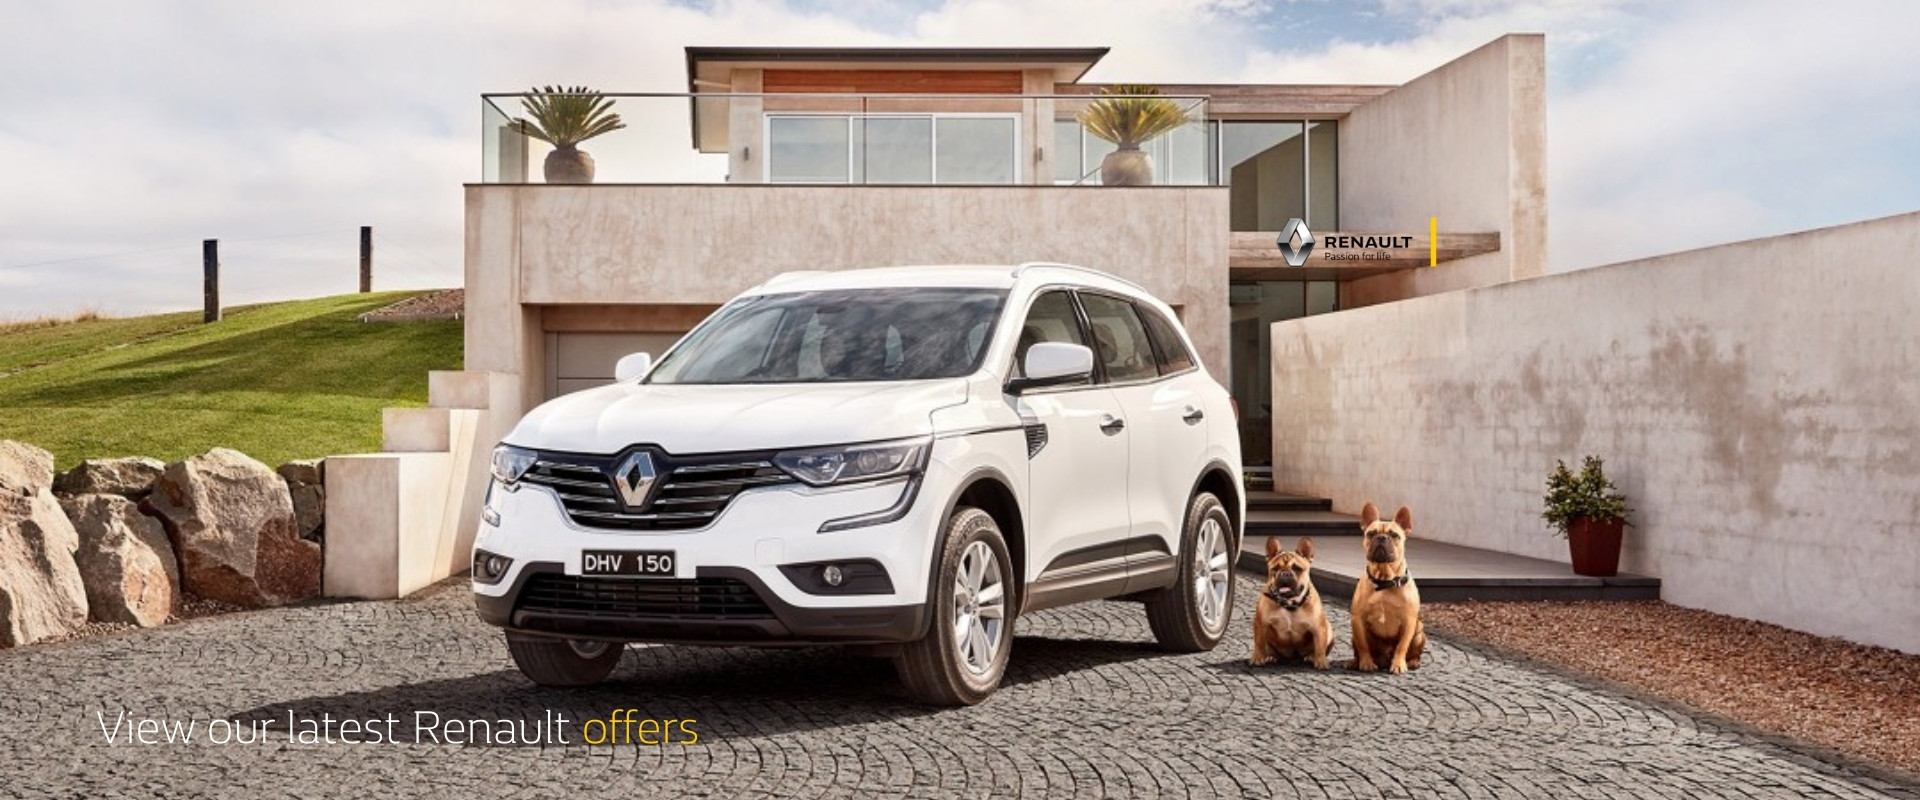 See our latest Renault Offers and Specials